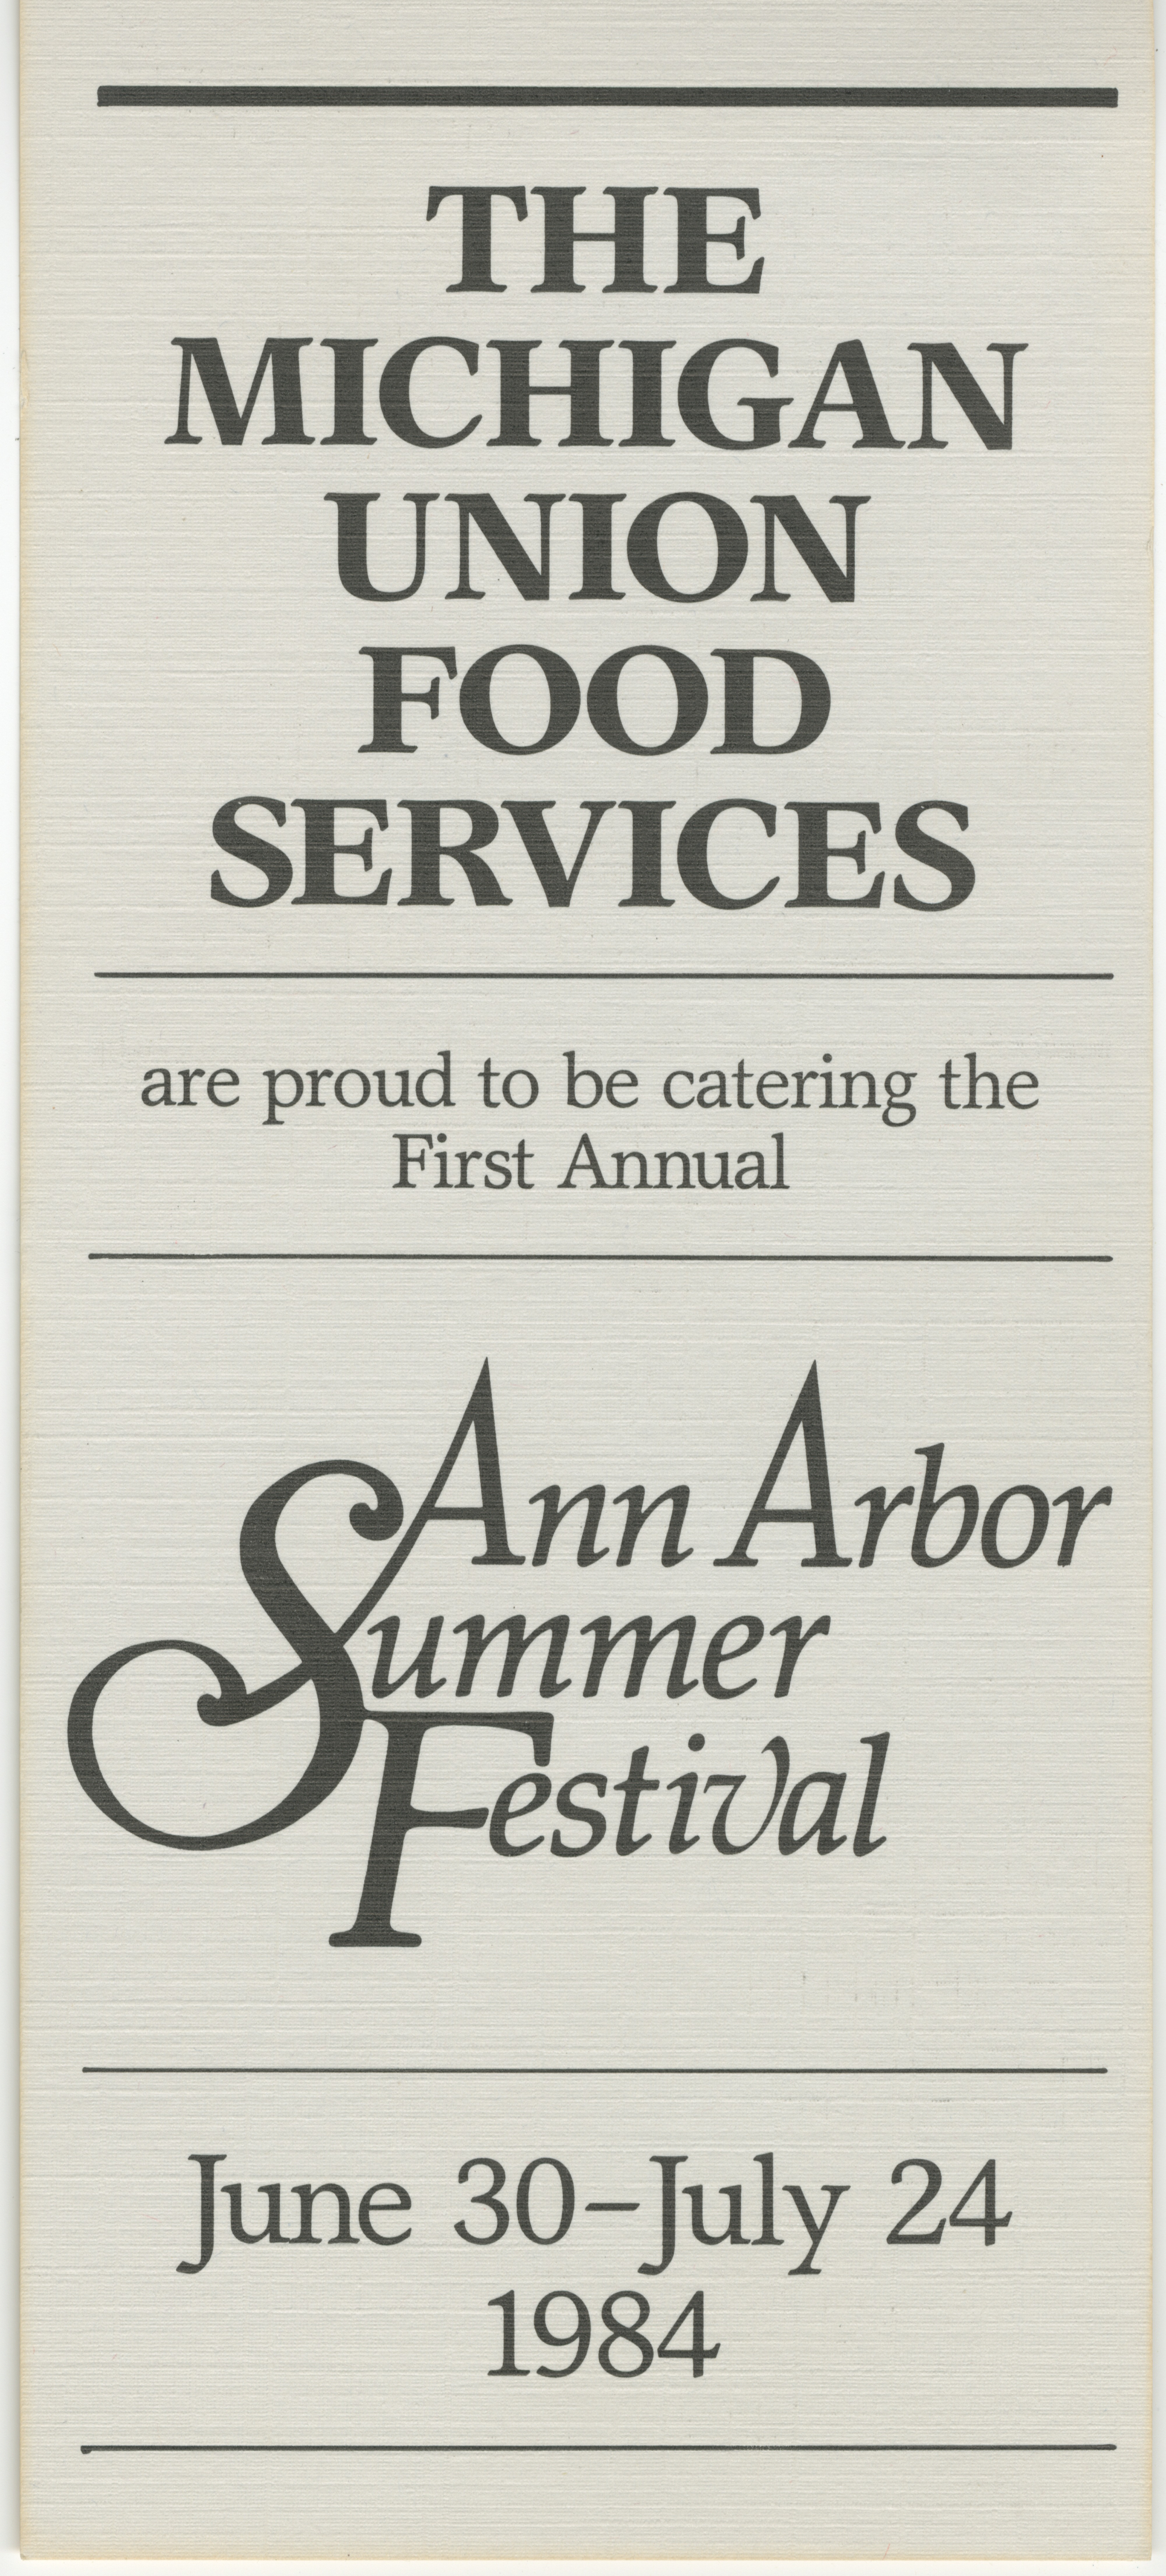 1984 Ann Arbor Summer Festival: Michigan Union Food Services image